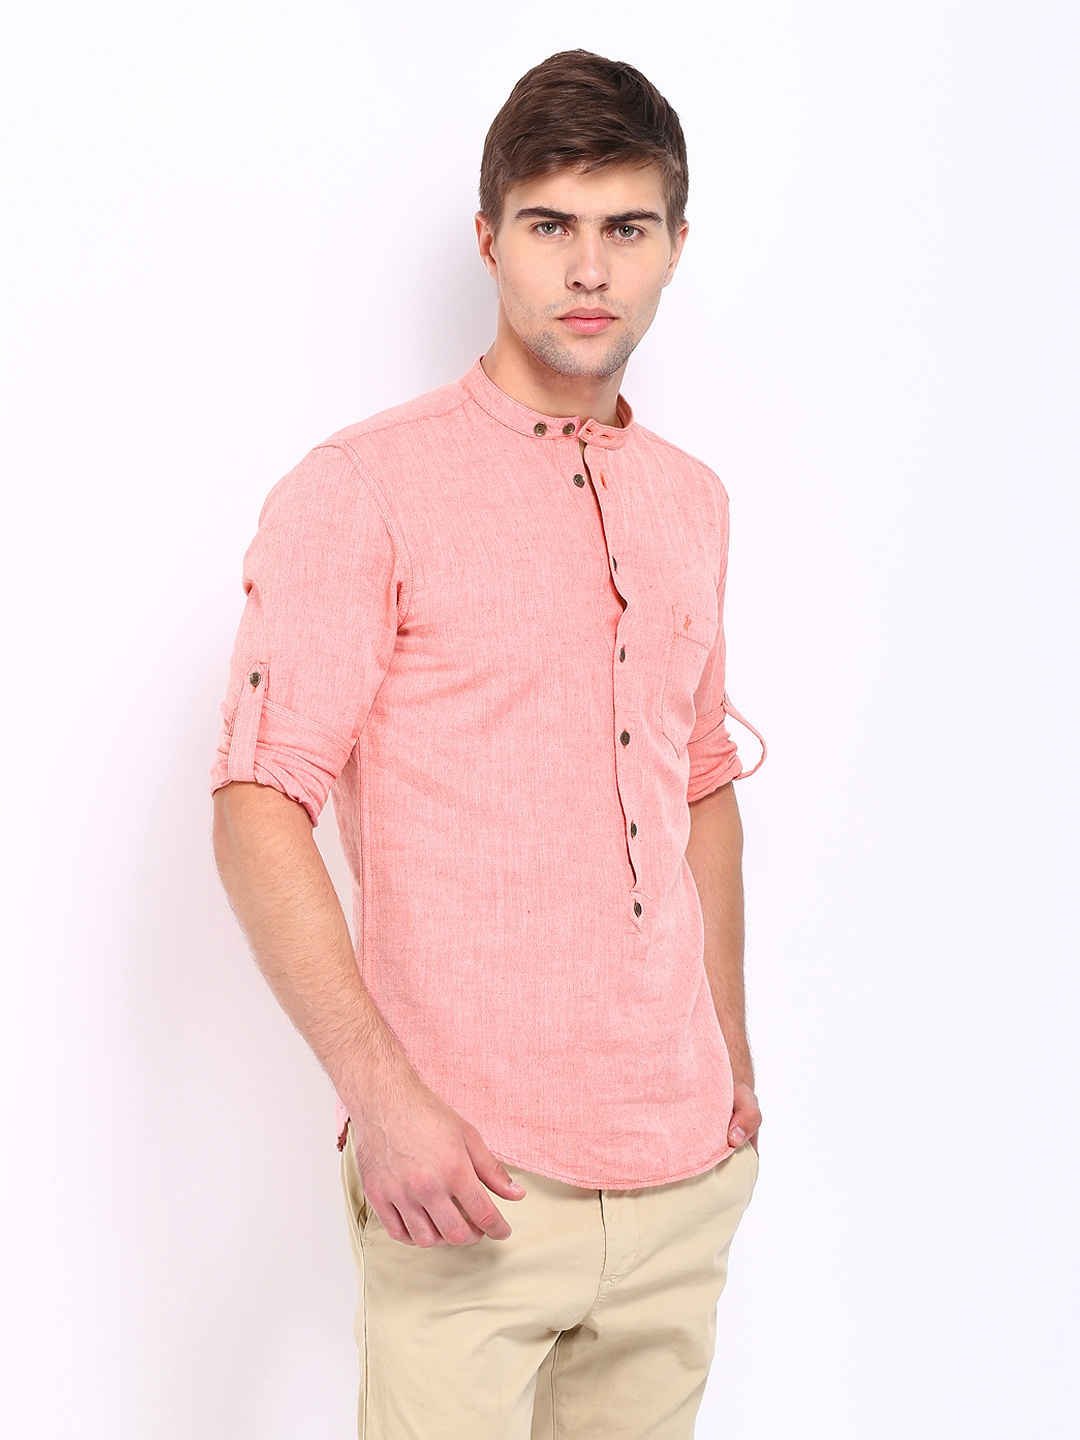 Peach Shirt For Men | Is Shirt